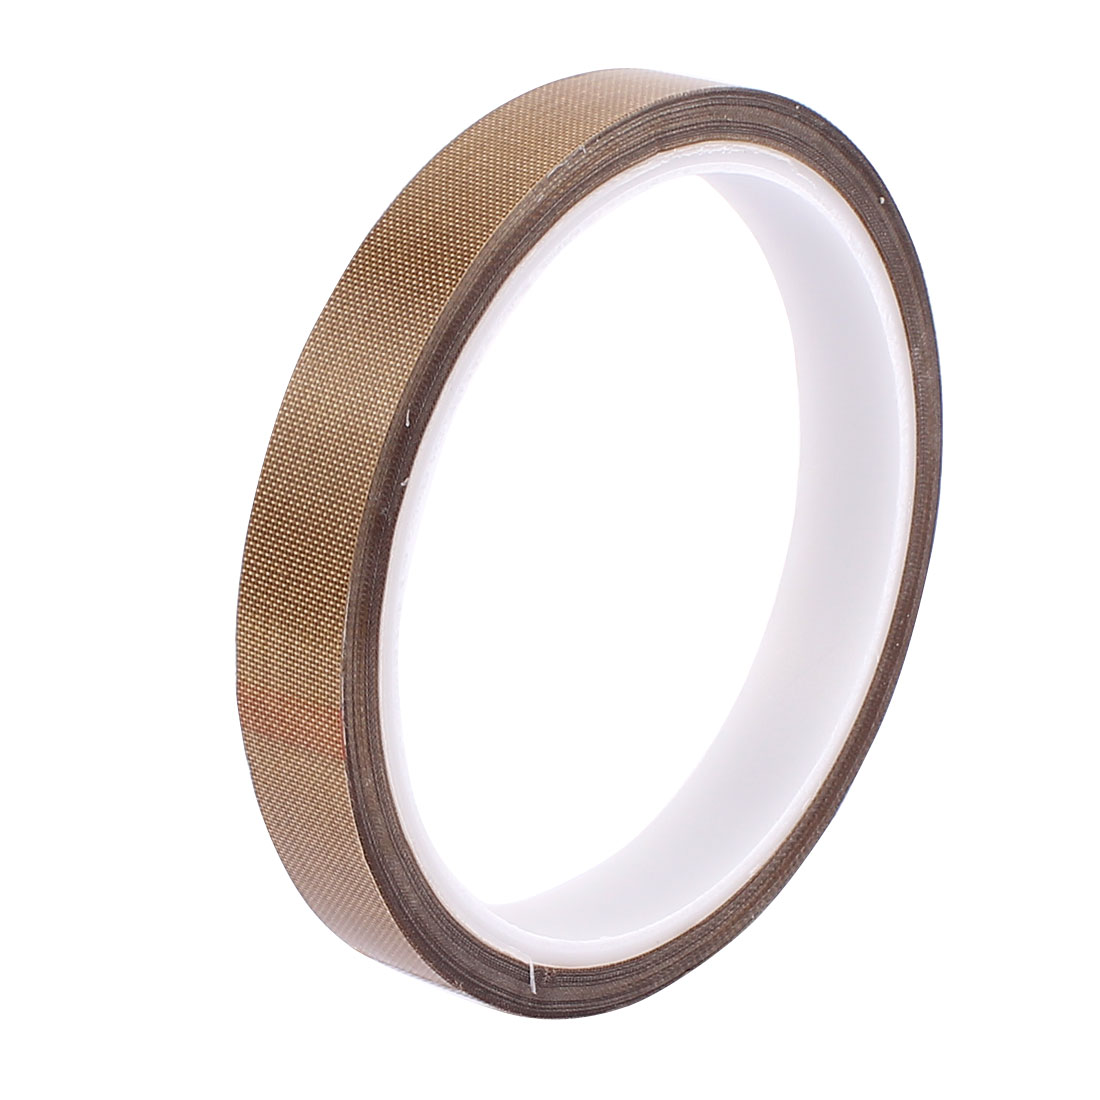 13mm Width 10M Long 0.13mm Thickness Nonstick High Temperature PTFE Adhesive Tape